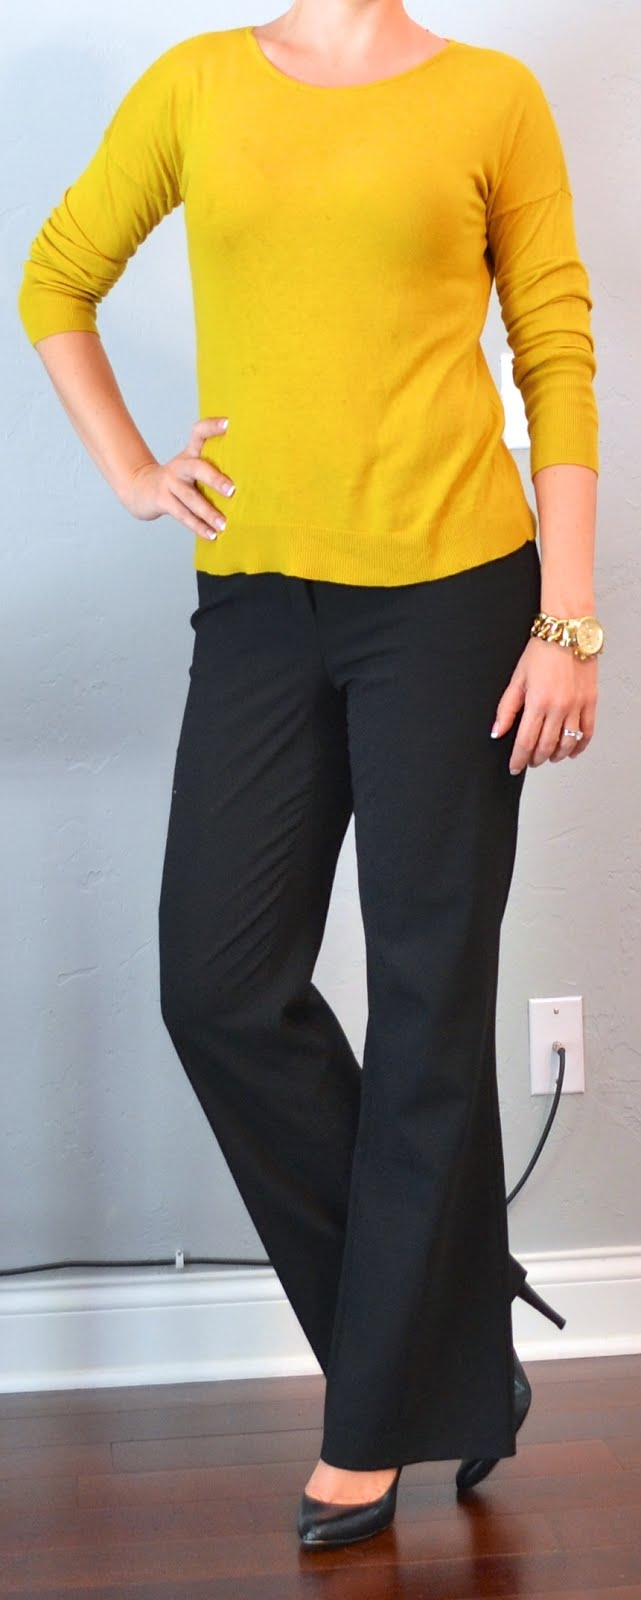 Outfit Post Mustard Sweater Black Pants